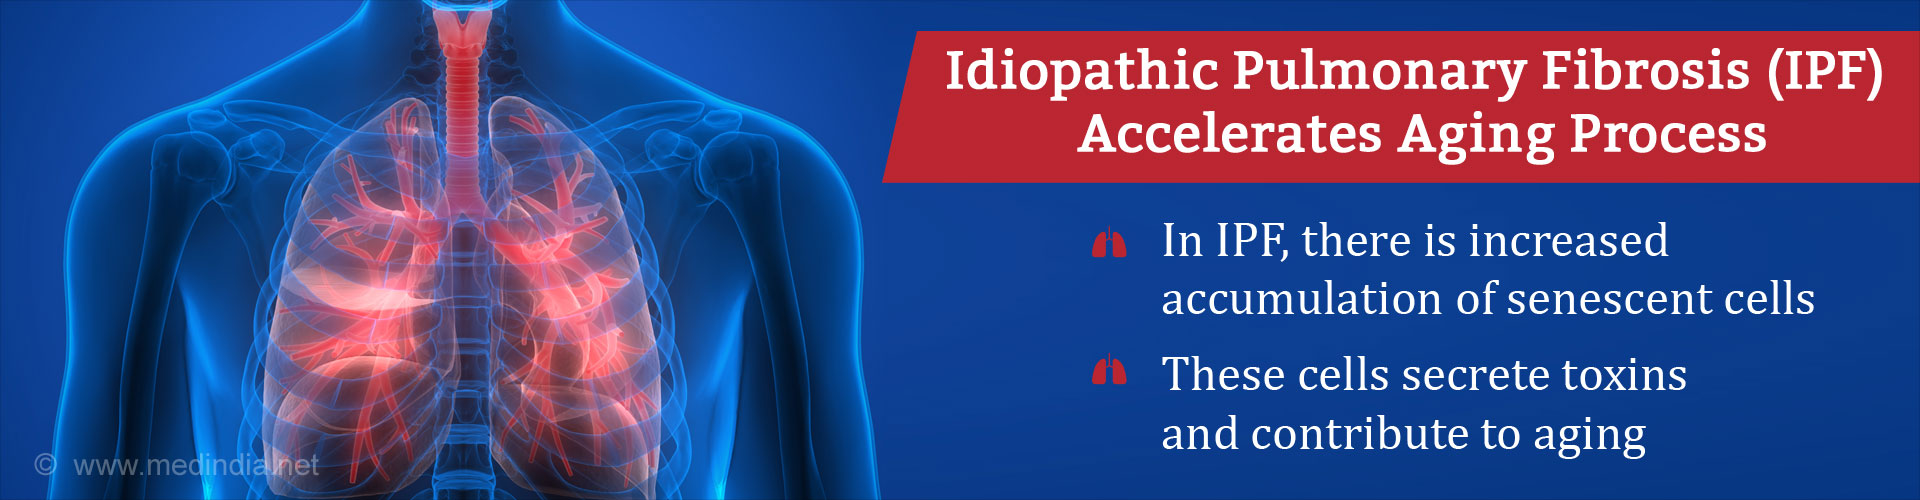 Idiopathic pulmonary fibrosis (IPF) accelerates aging process - In IPF, there is increased accumulation of senescent cells - These cells screte toxins and contribute to aging